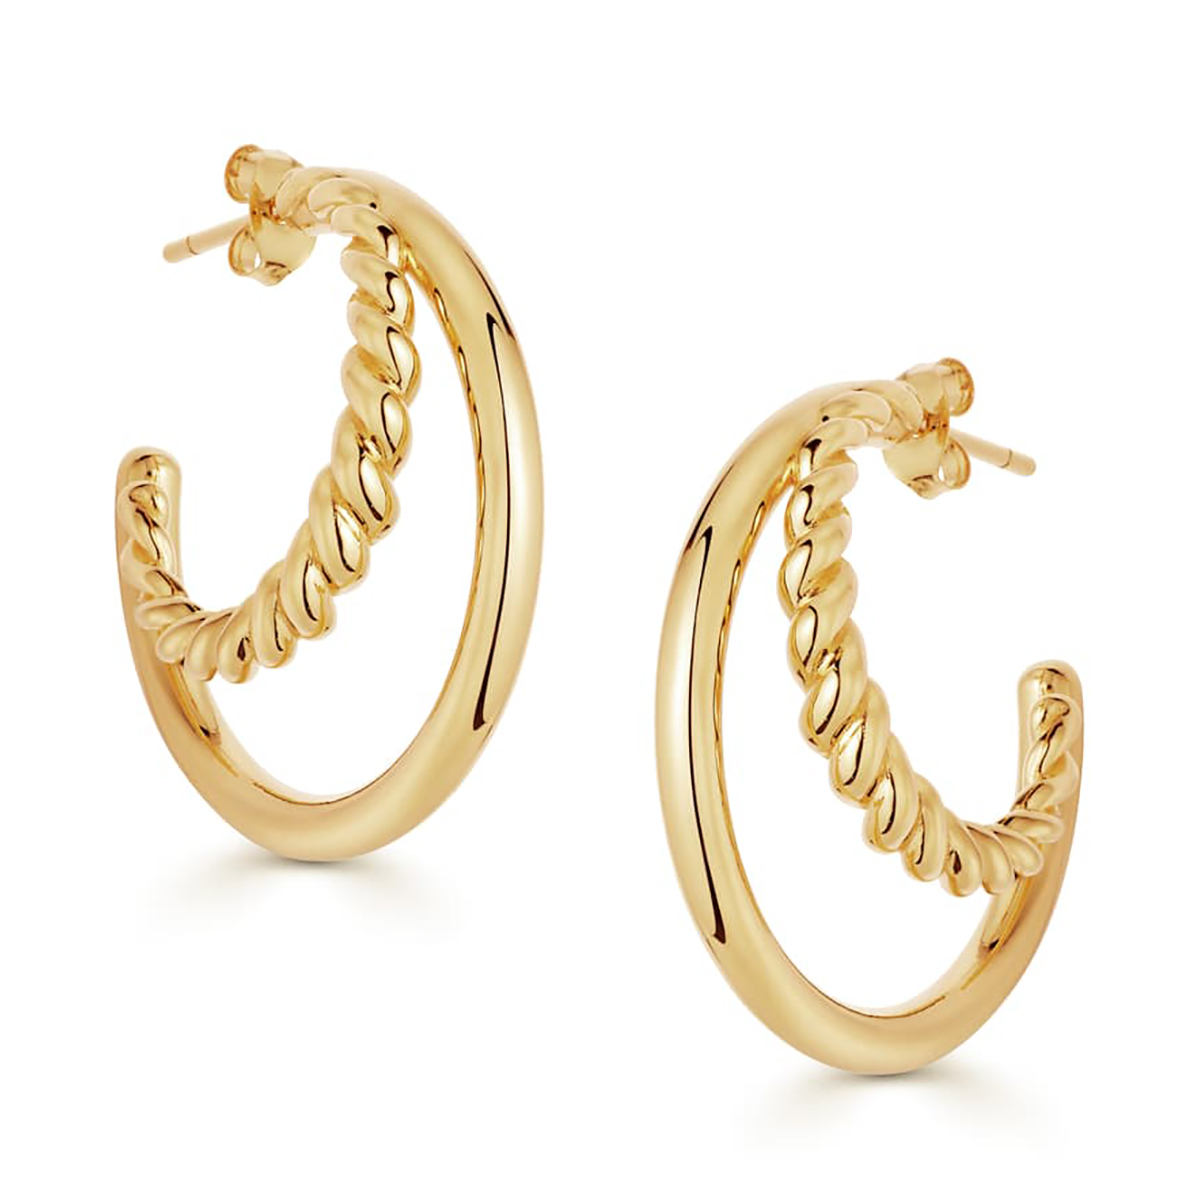 Radial Hoop Earrings